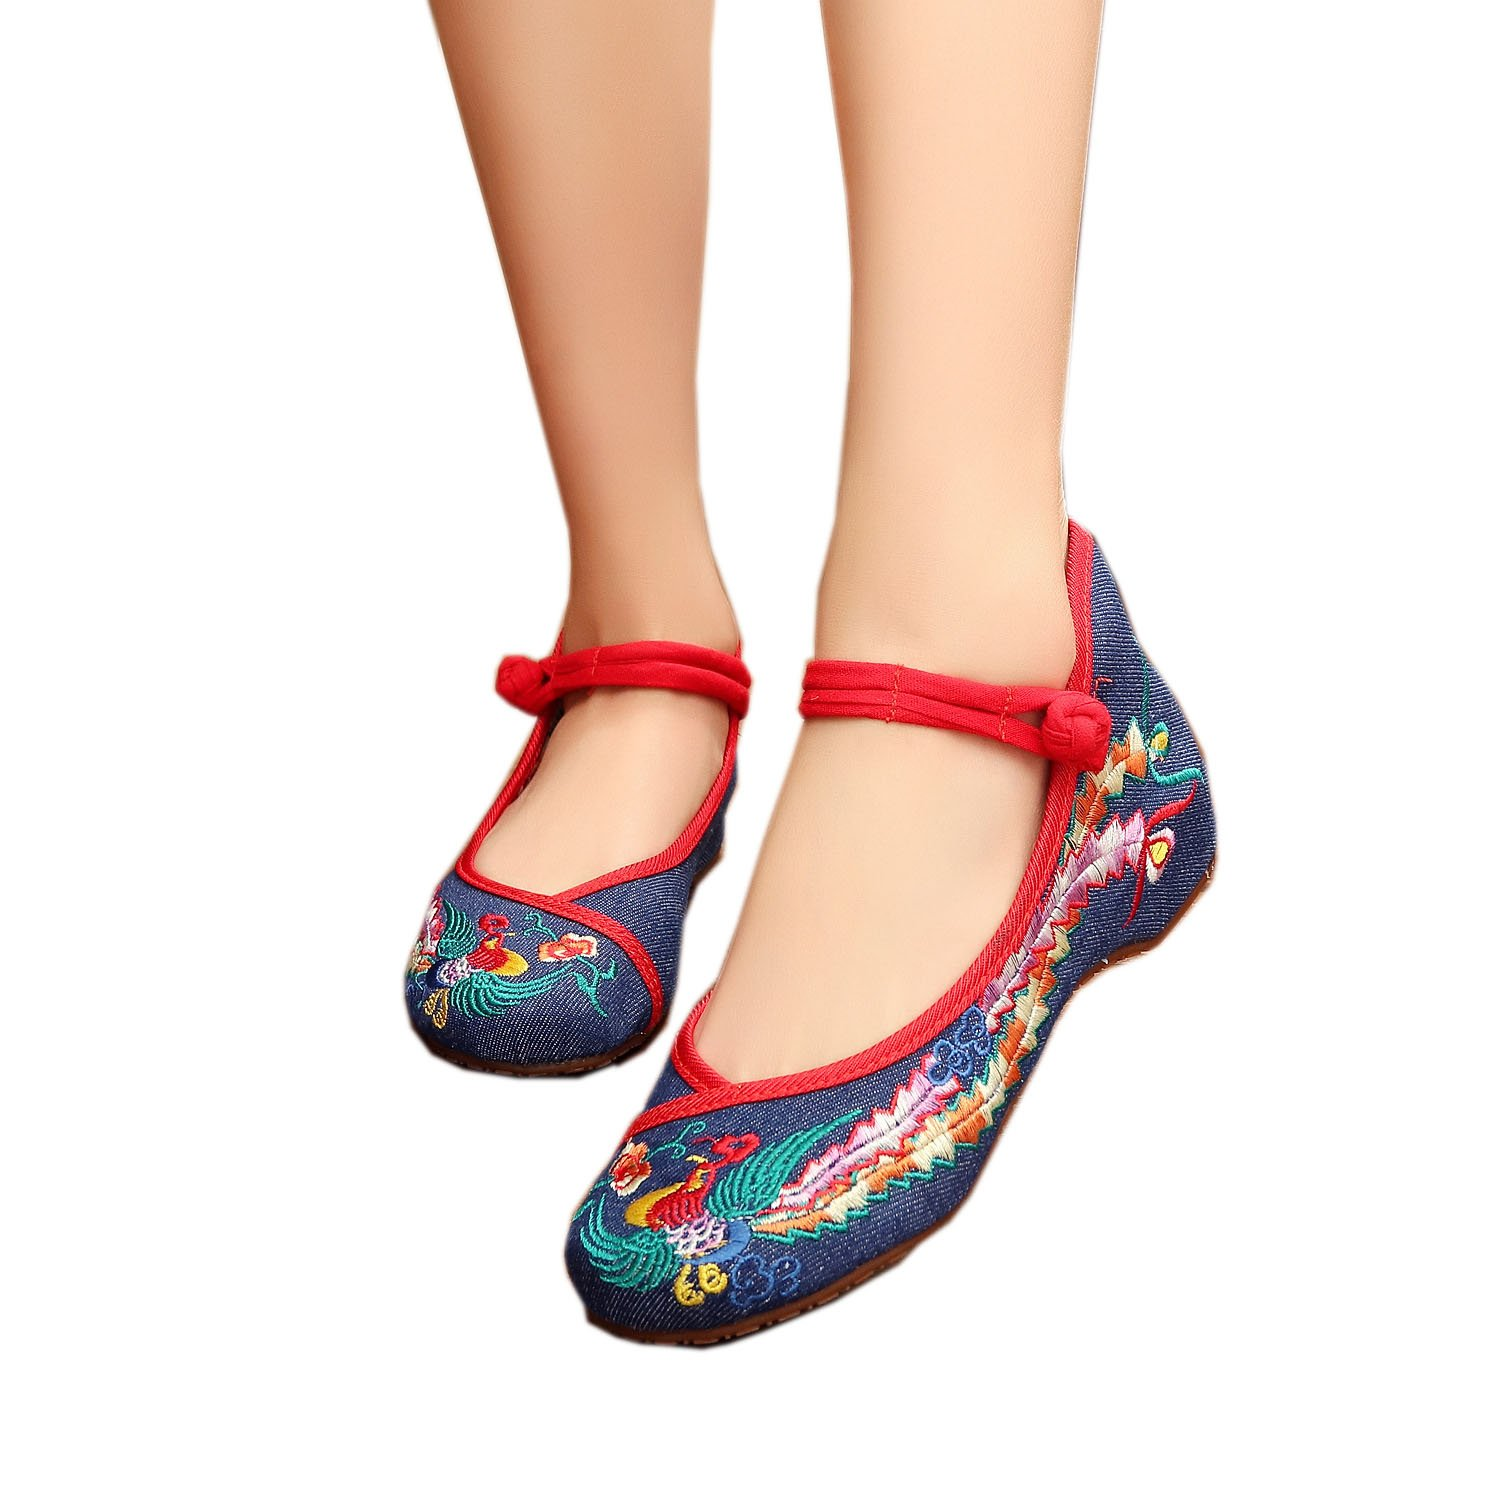 Women Embroidery Rubber Sole Summer Wedges Sandals Fashion Dress Shoes For Cheongsam